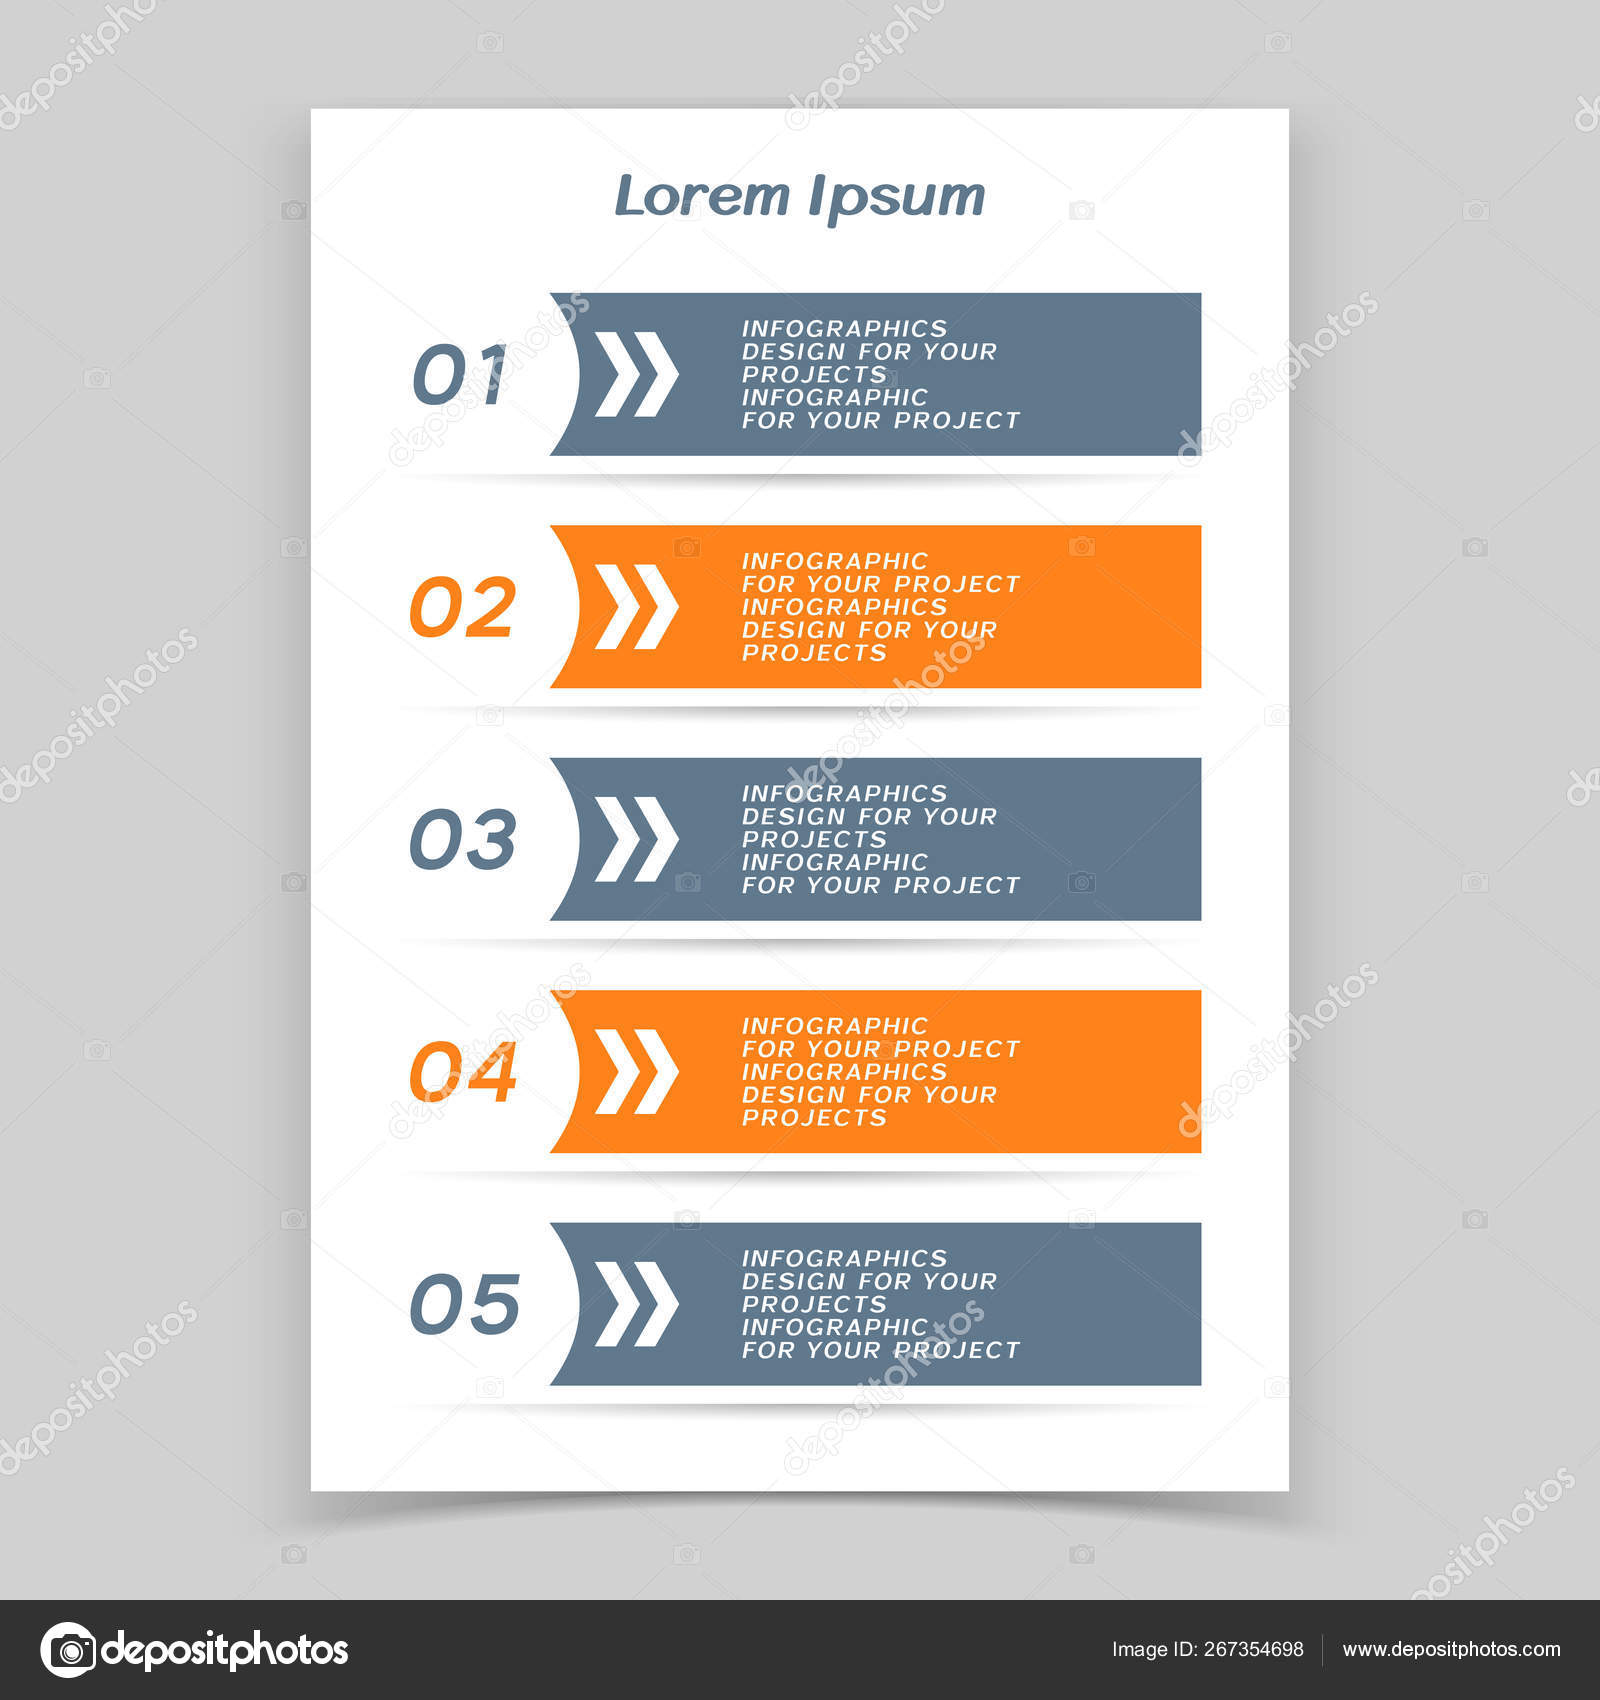 Infographic table or web banner design with numbered steps